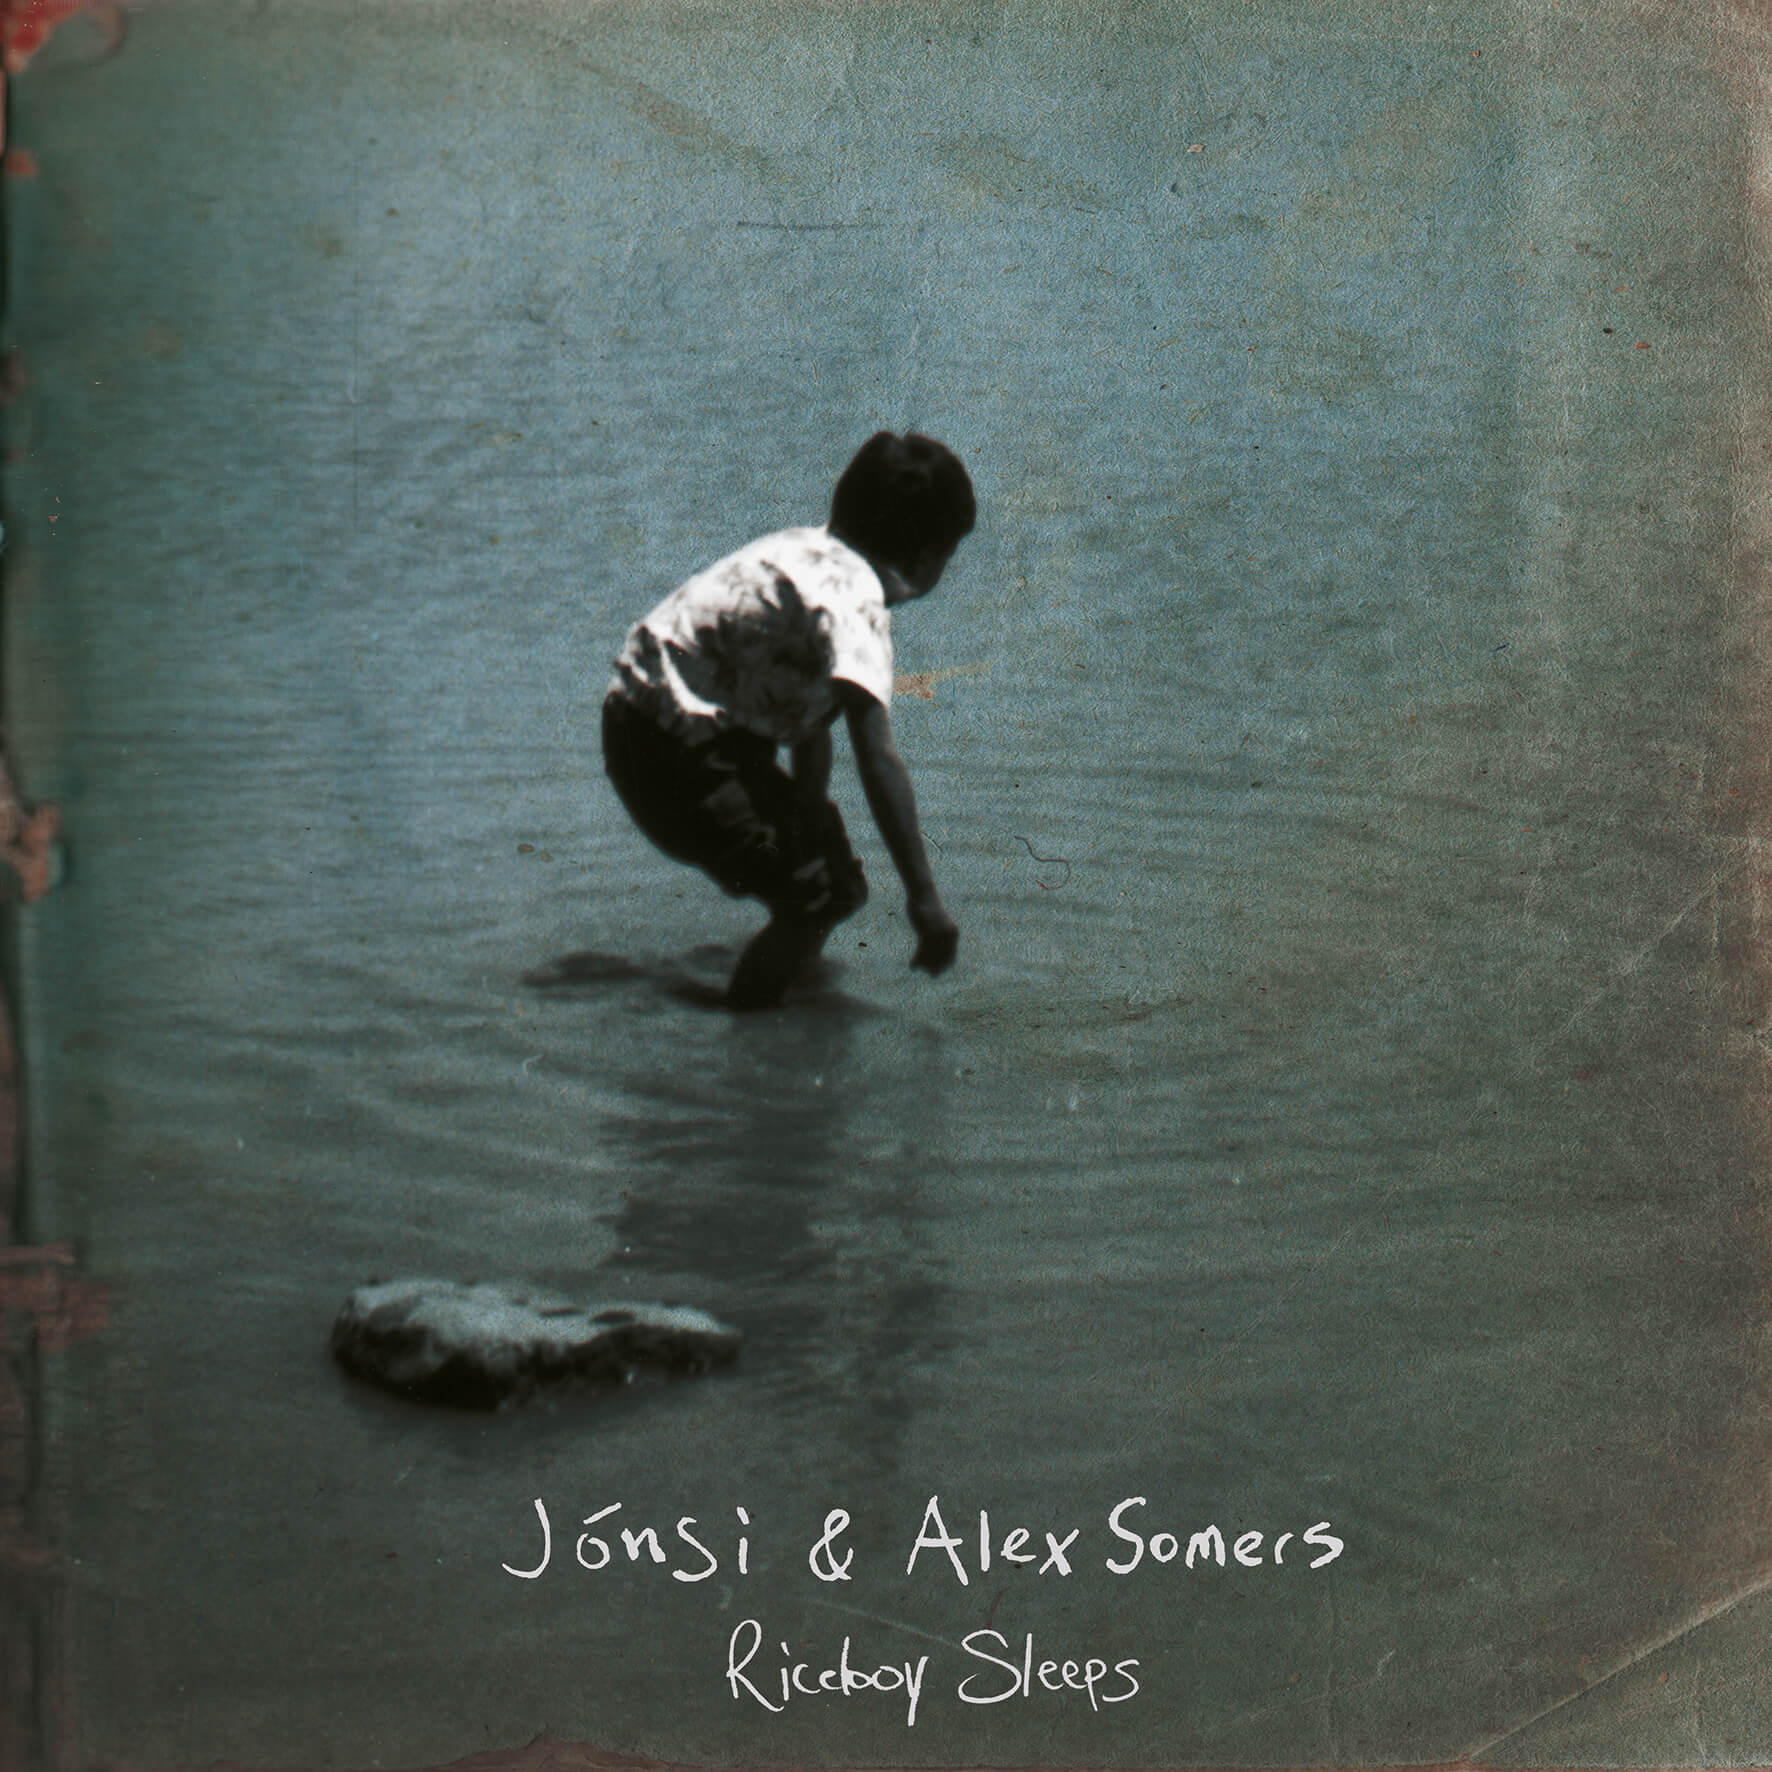 Jonis & Alex Somers Riceboy Sleeps 10th anniversary reissue cover artwork